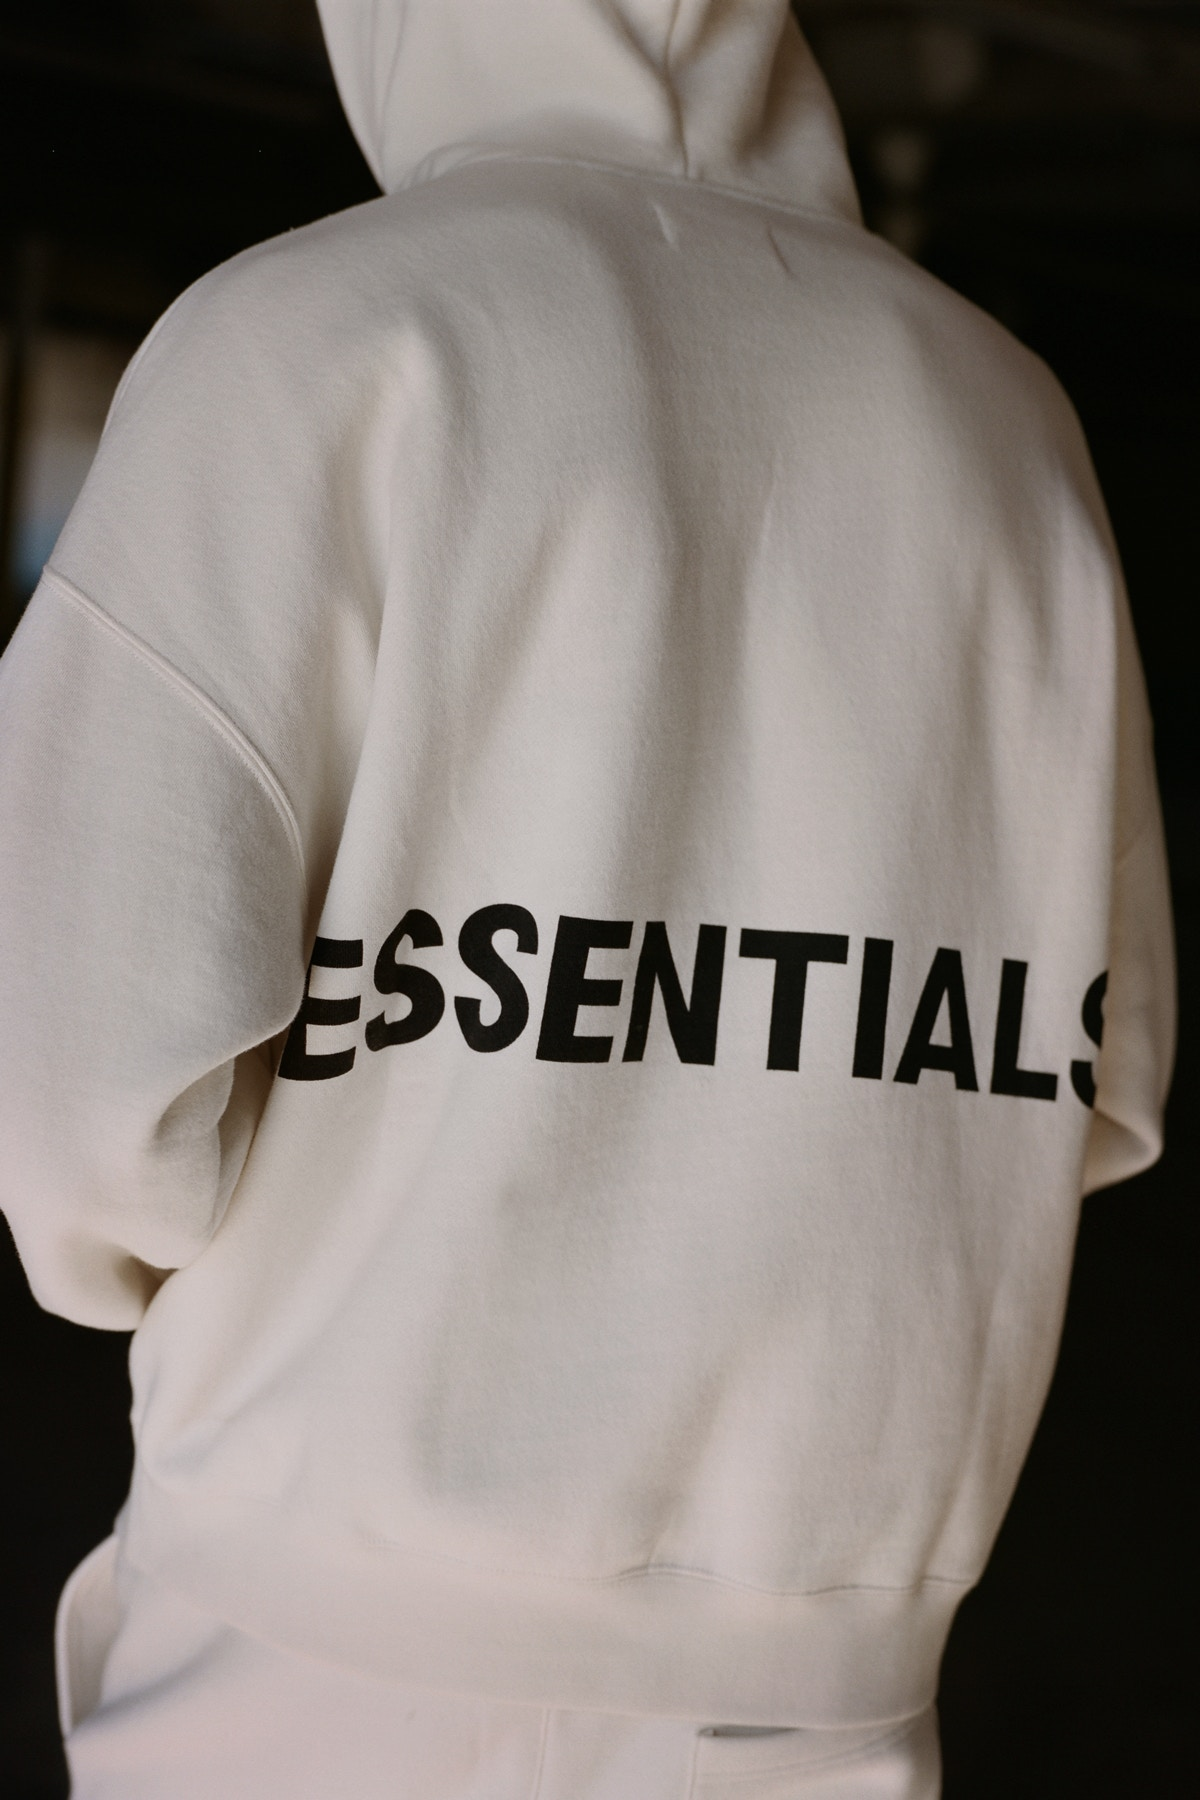 fear-of-god-essentials-collection-7.jpg